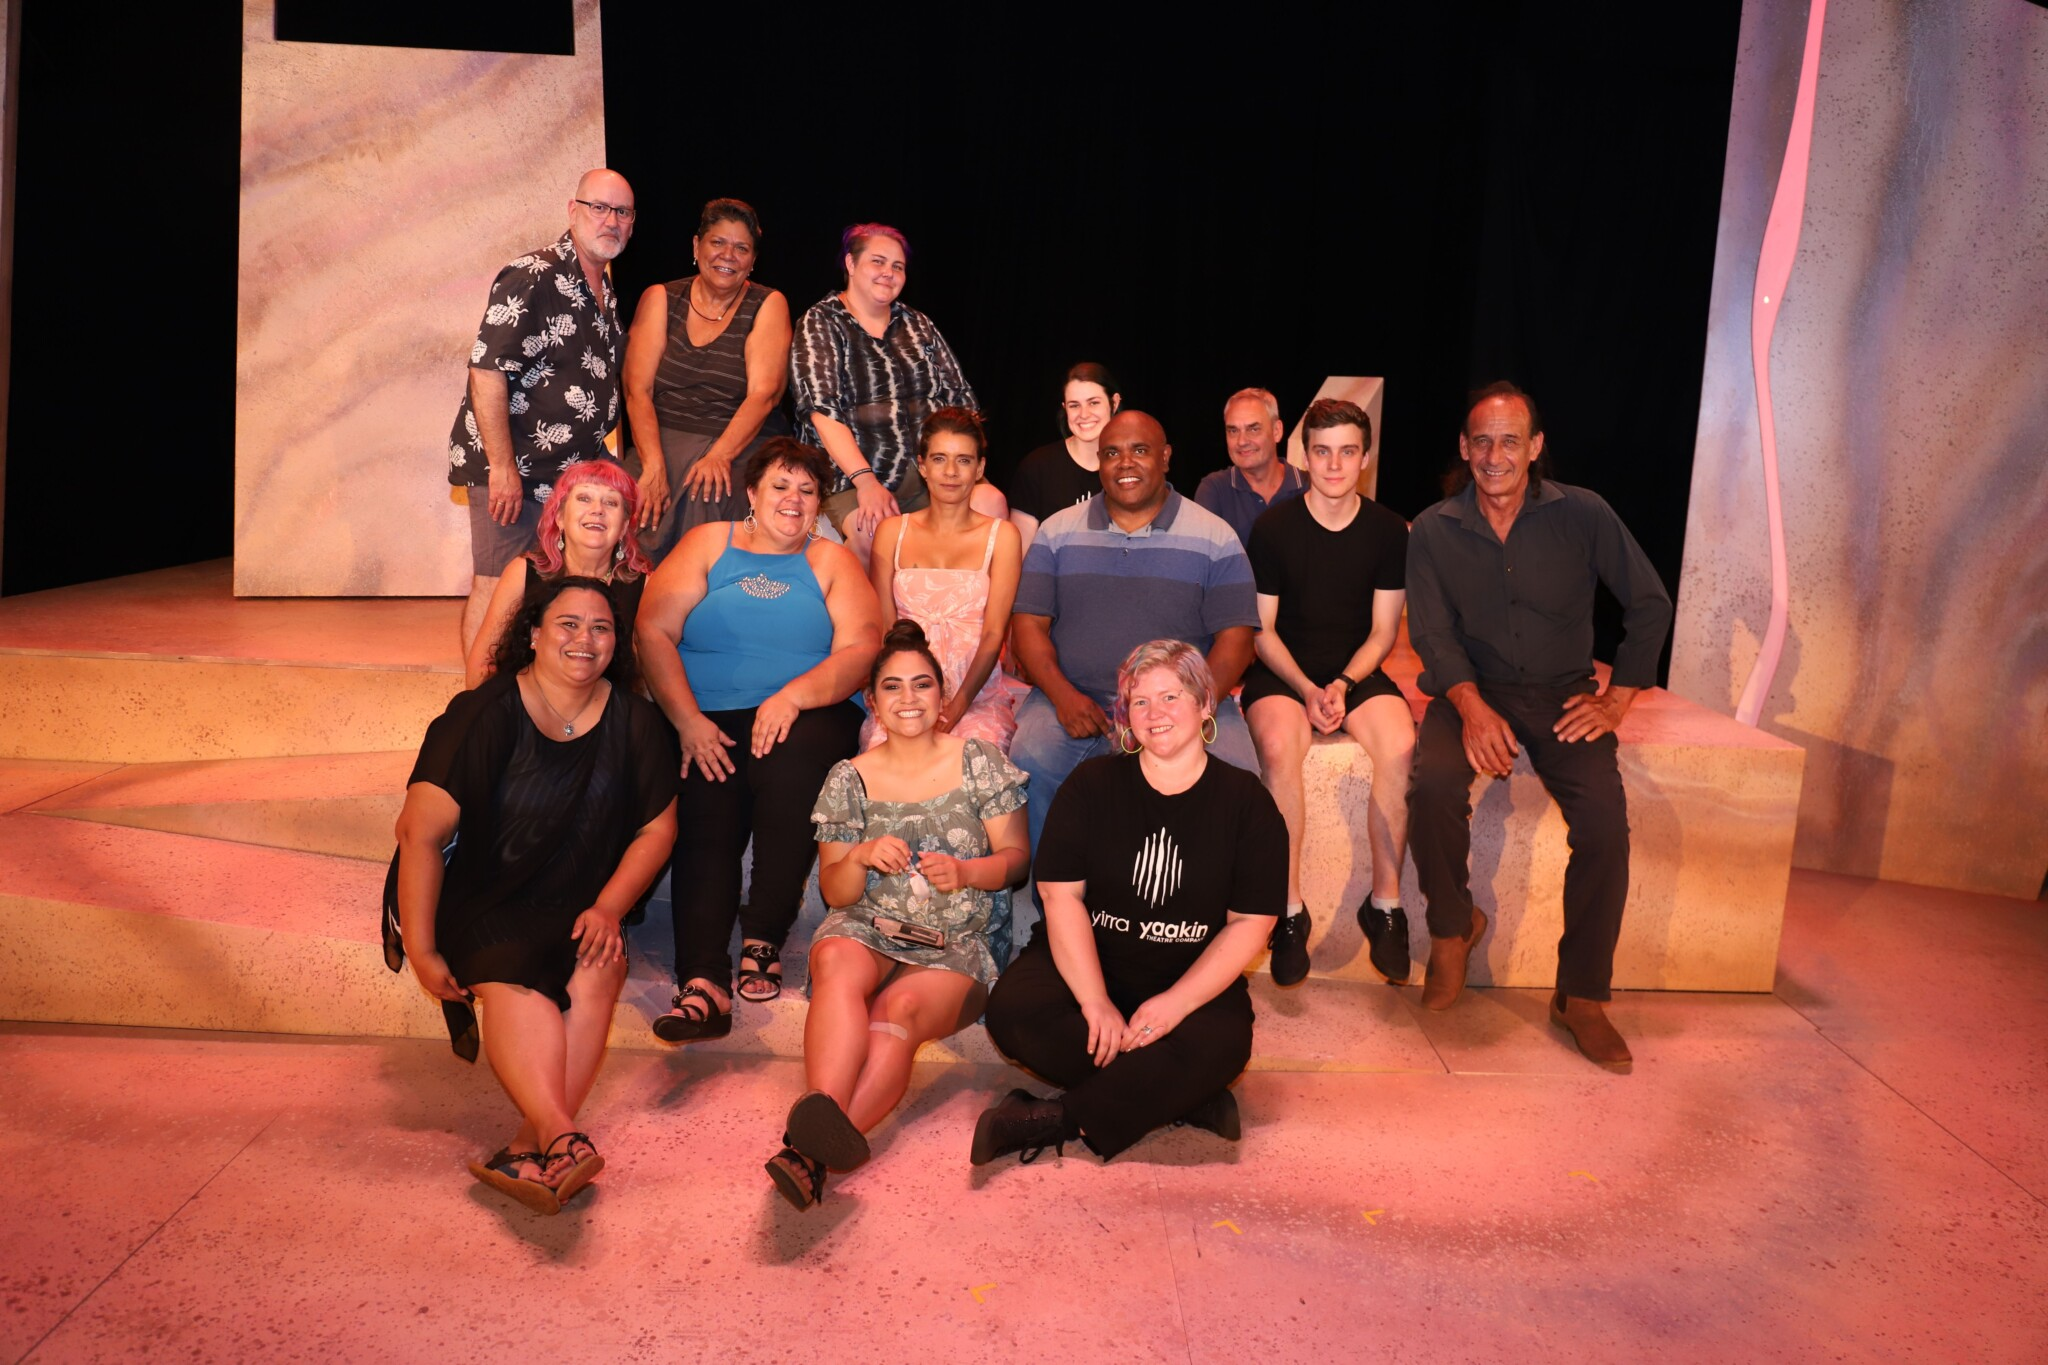 Cast and creative sit and stand on stage as a group